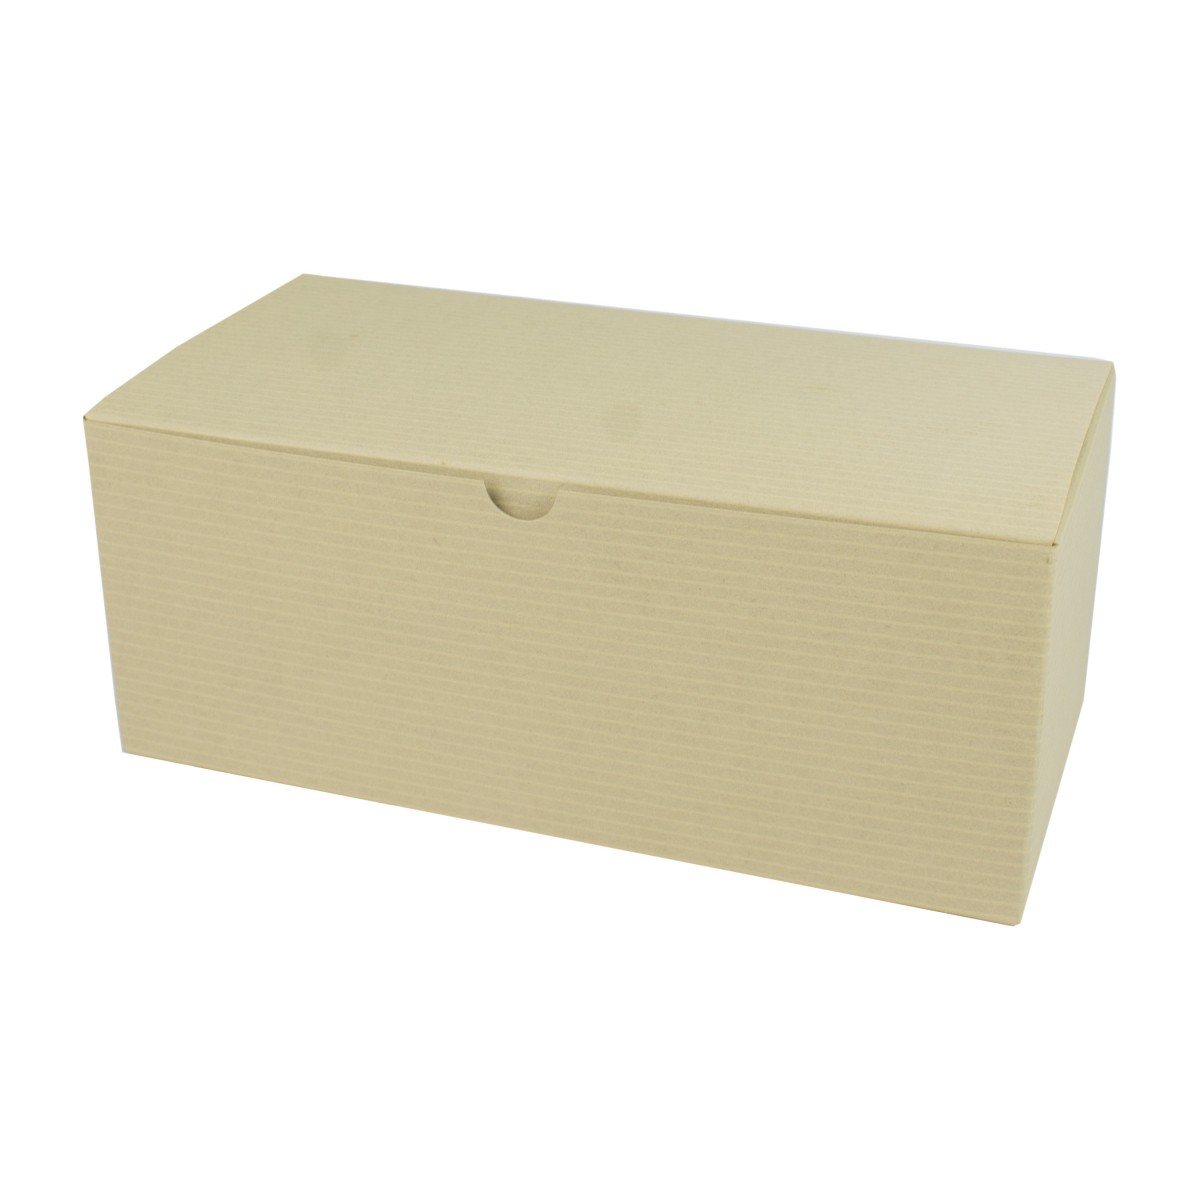 10 x 5 x 4 OATMEAL TINTED TUCK-TOP GIFT BOXES